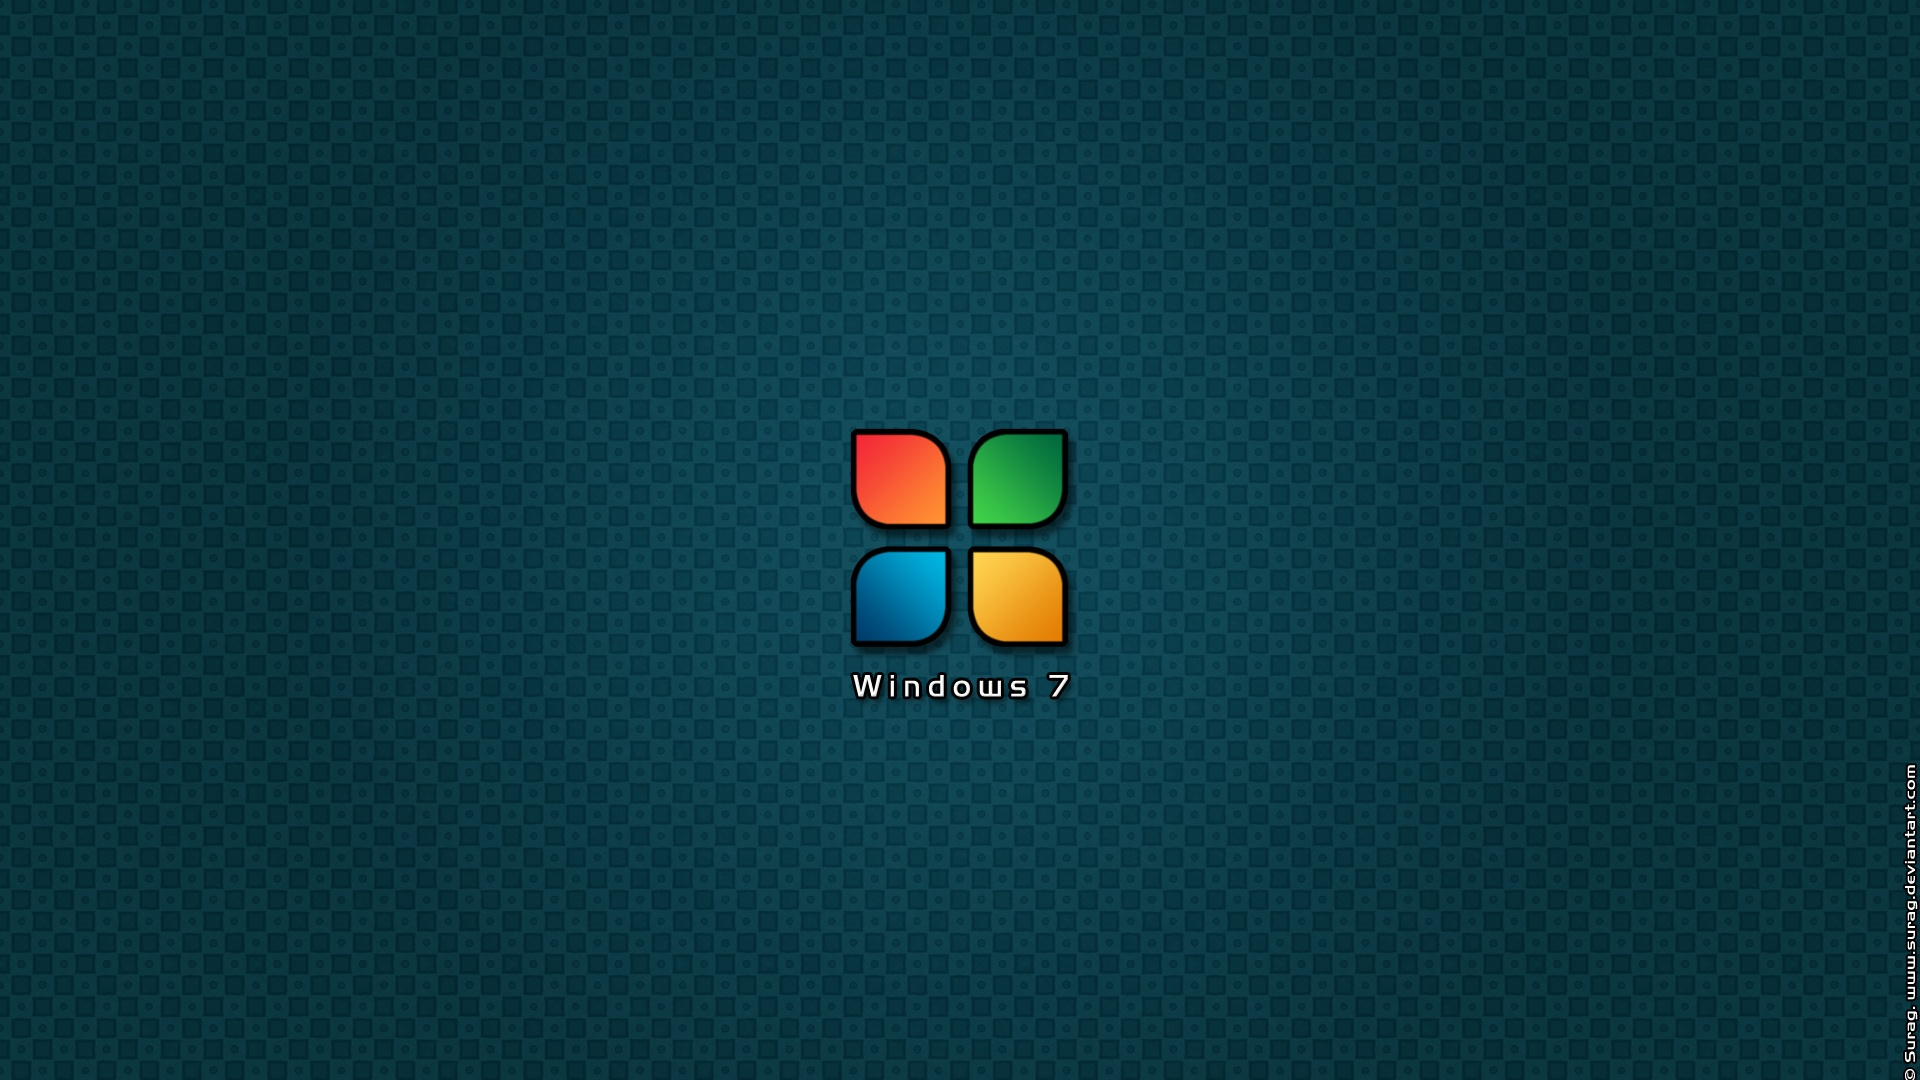 apple desktop wallpaper windows 7 - photo #34